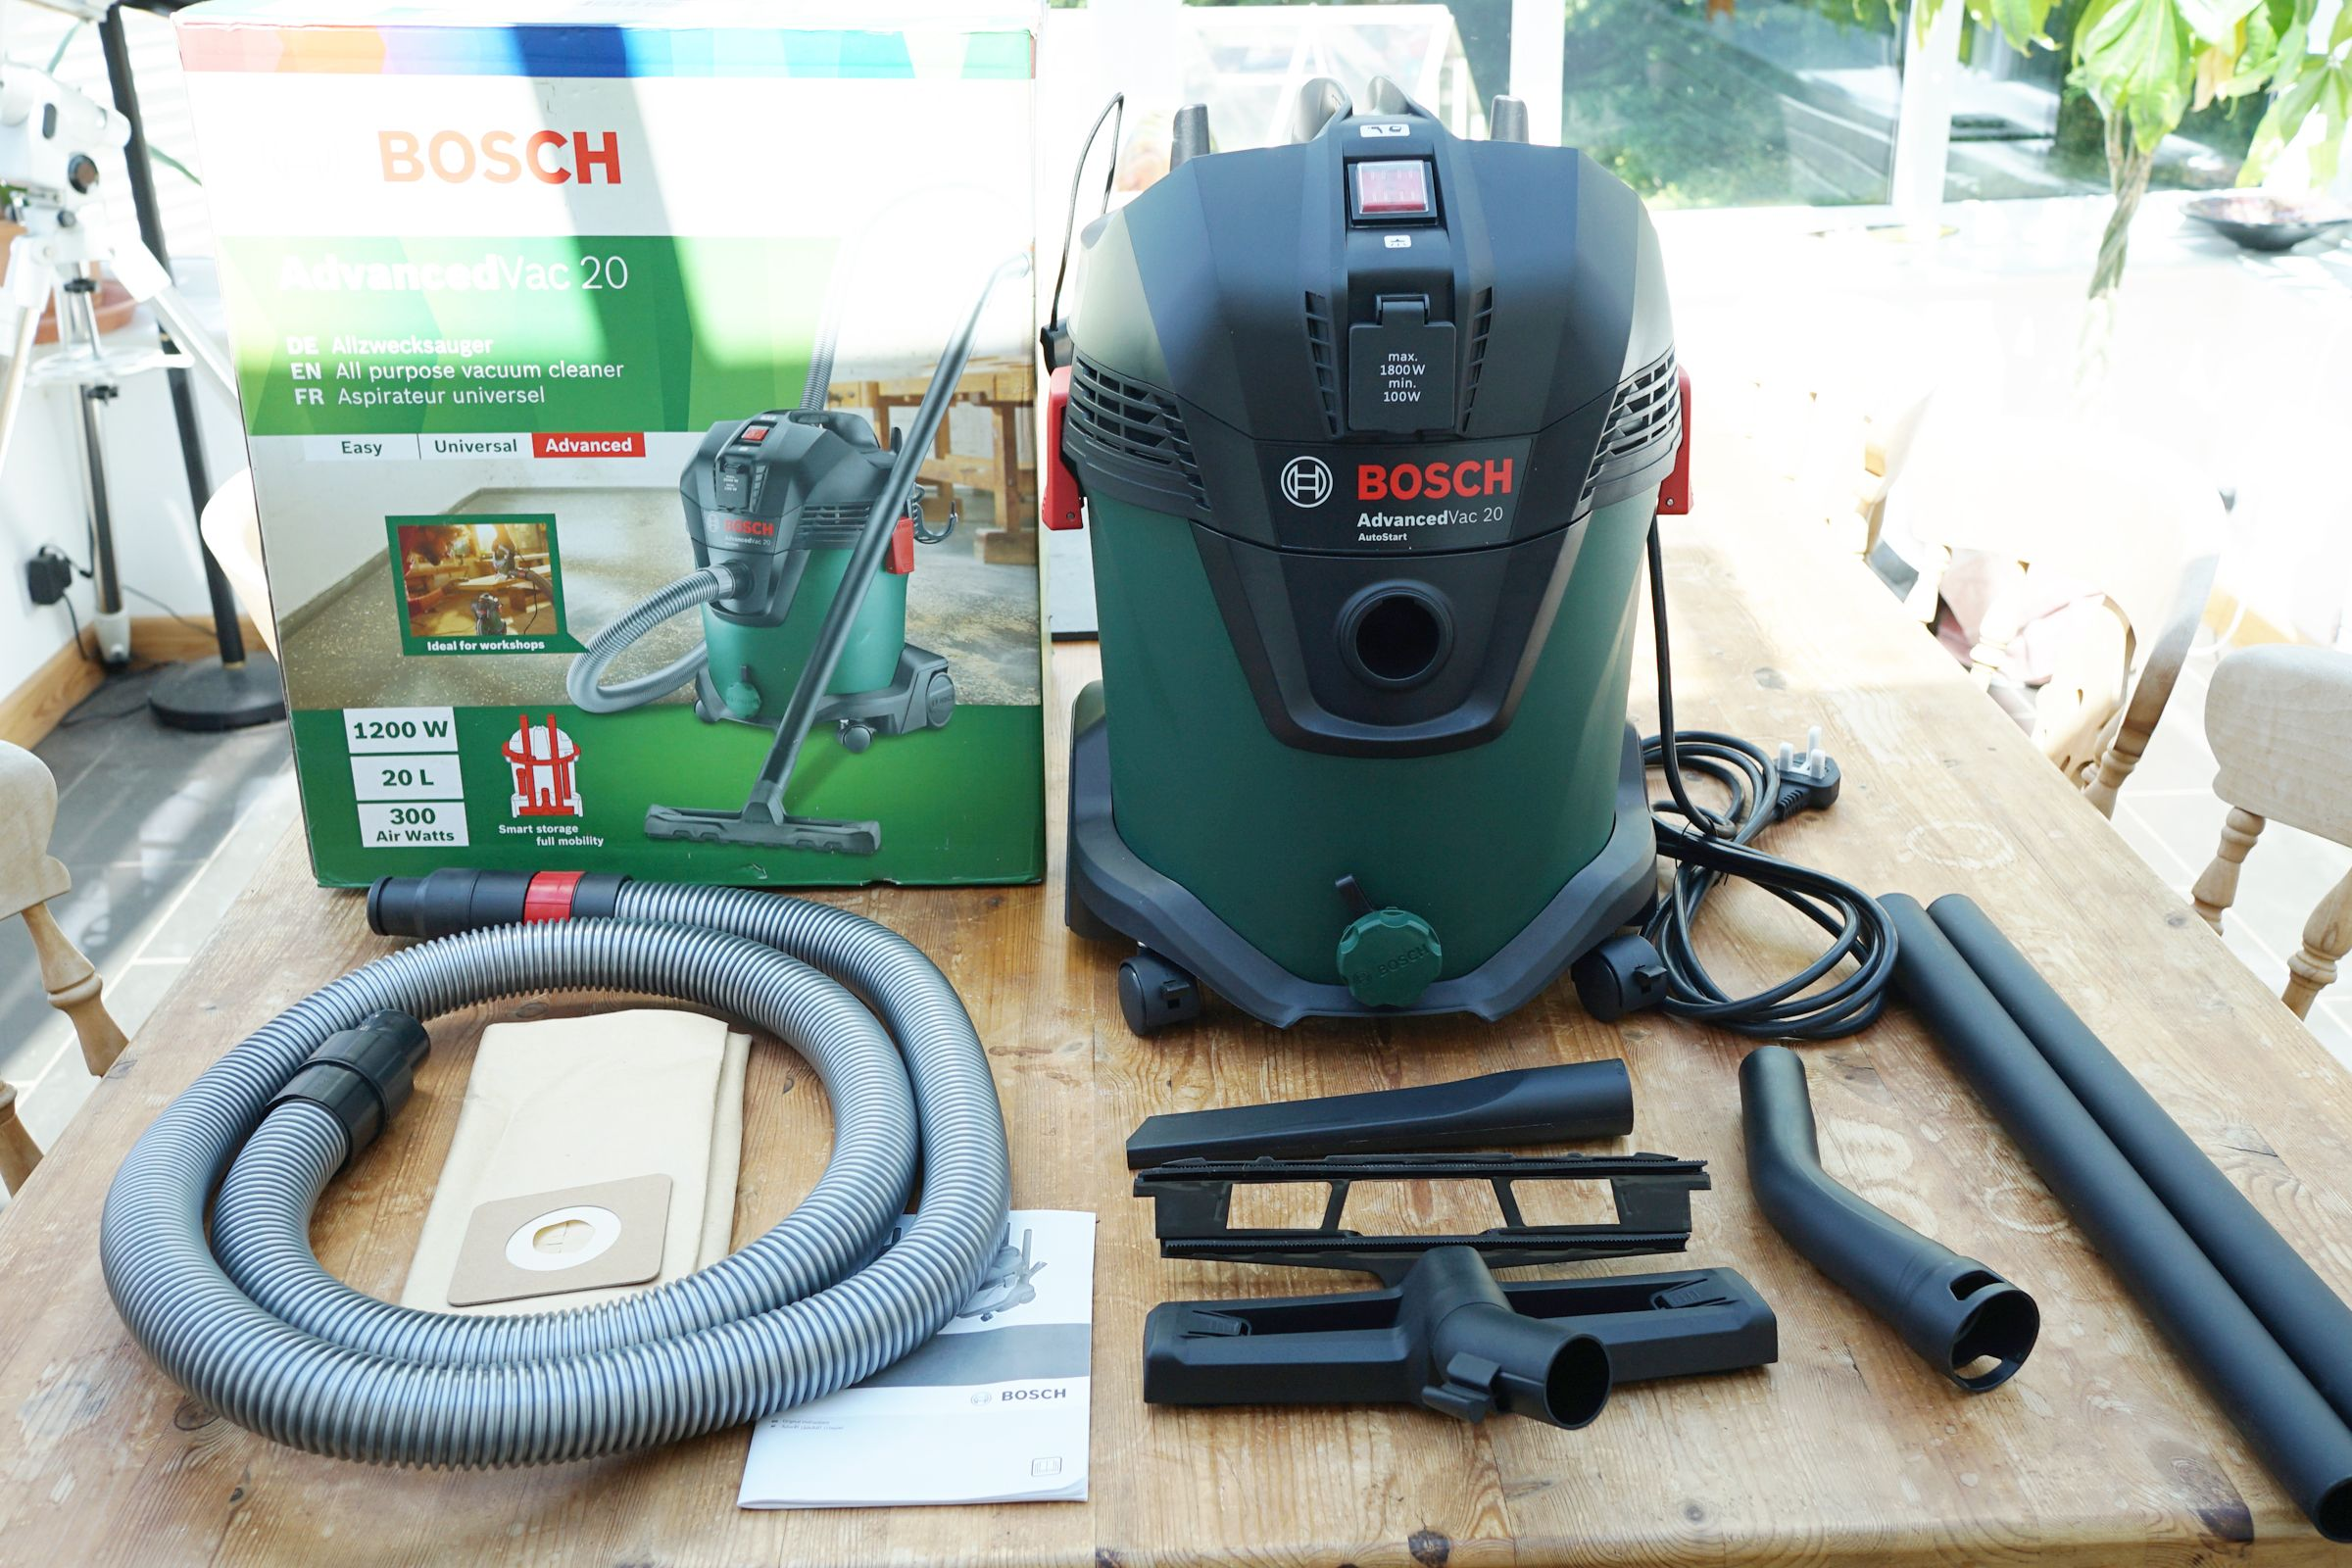 Bosch Advancedvac 20 Wet Dry Vacuum Review Verdict Decked Out In Bosch S Power Tool Green Wet Dry Vacuum Wet And Dry Green Color Schemes